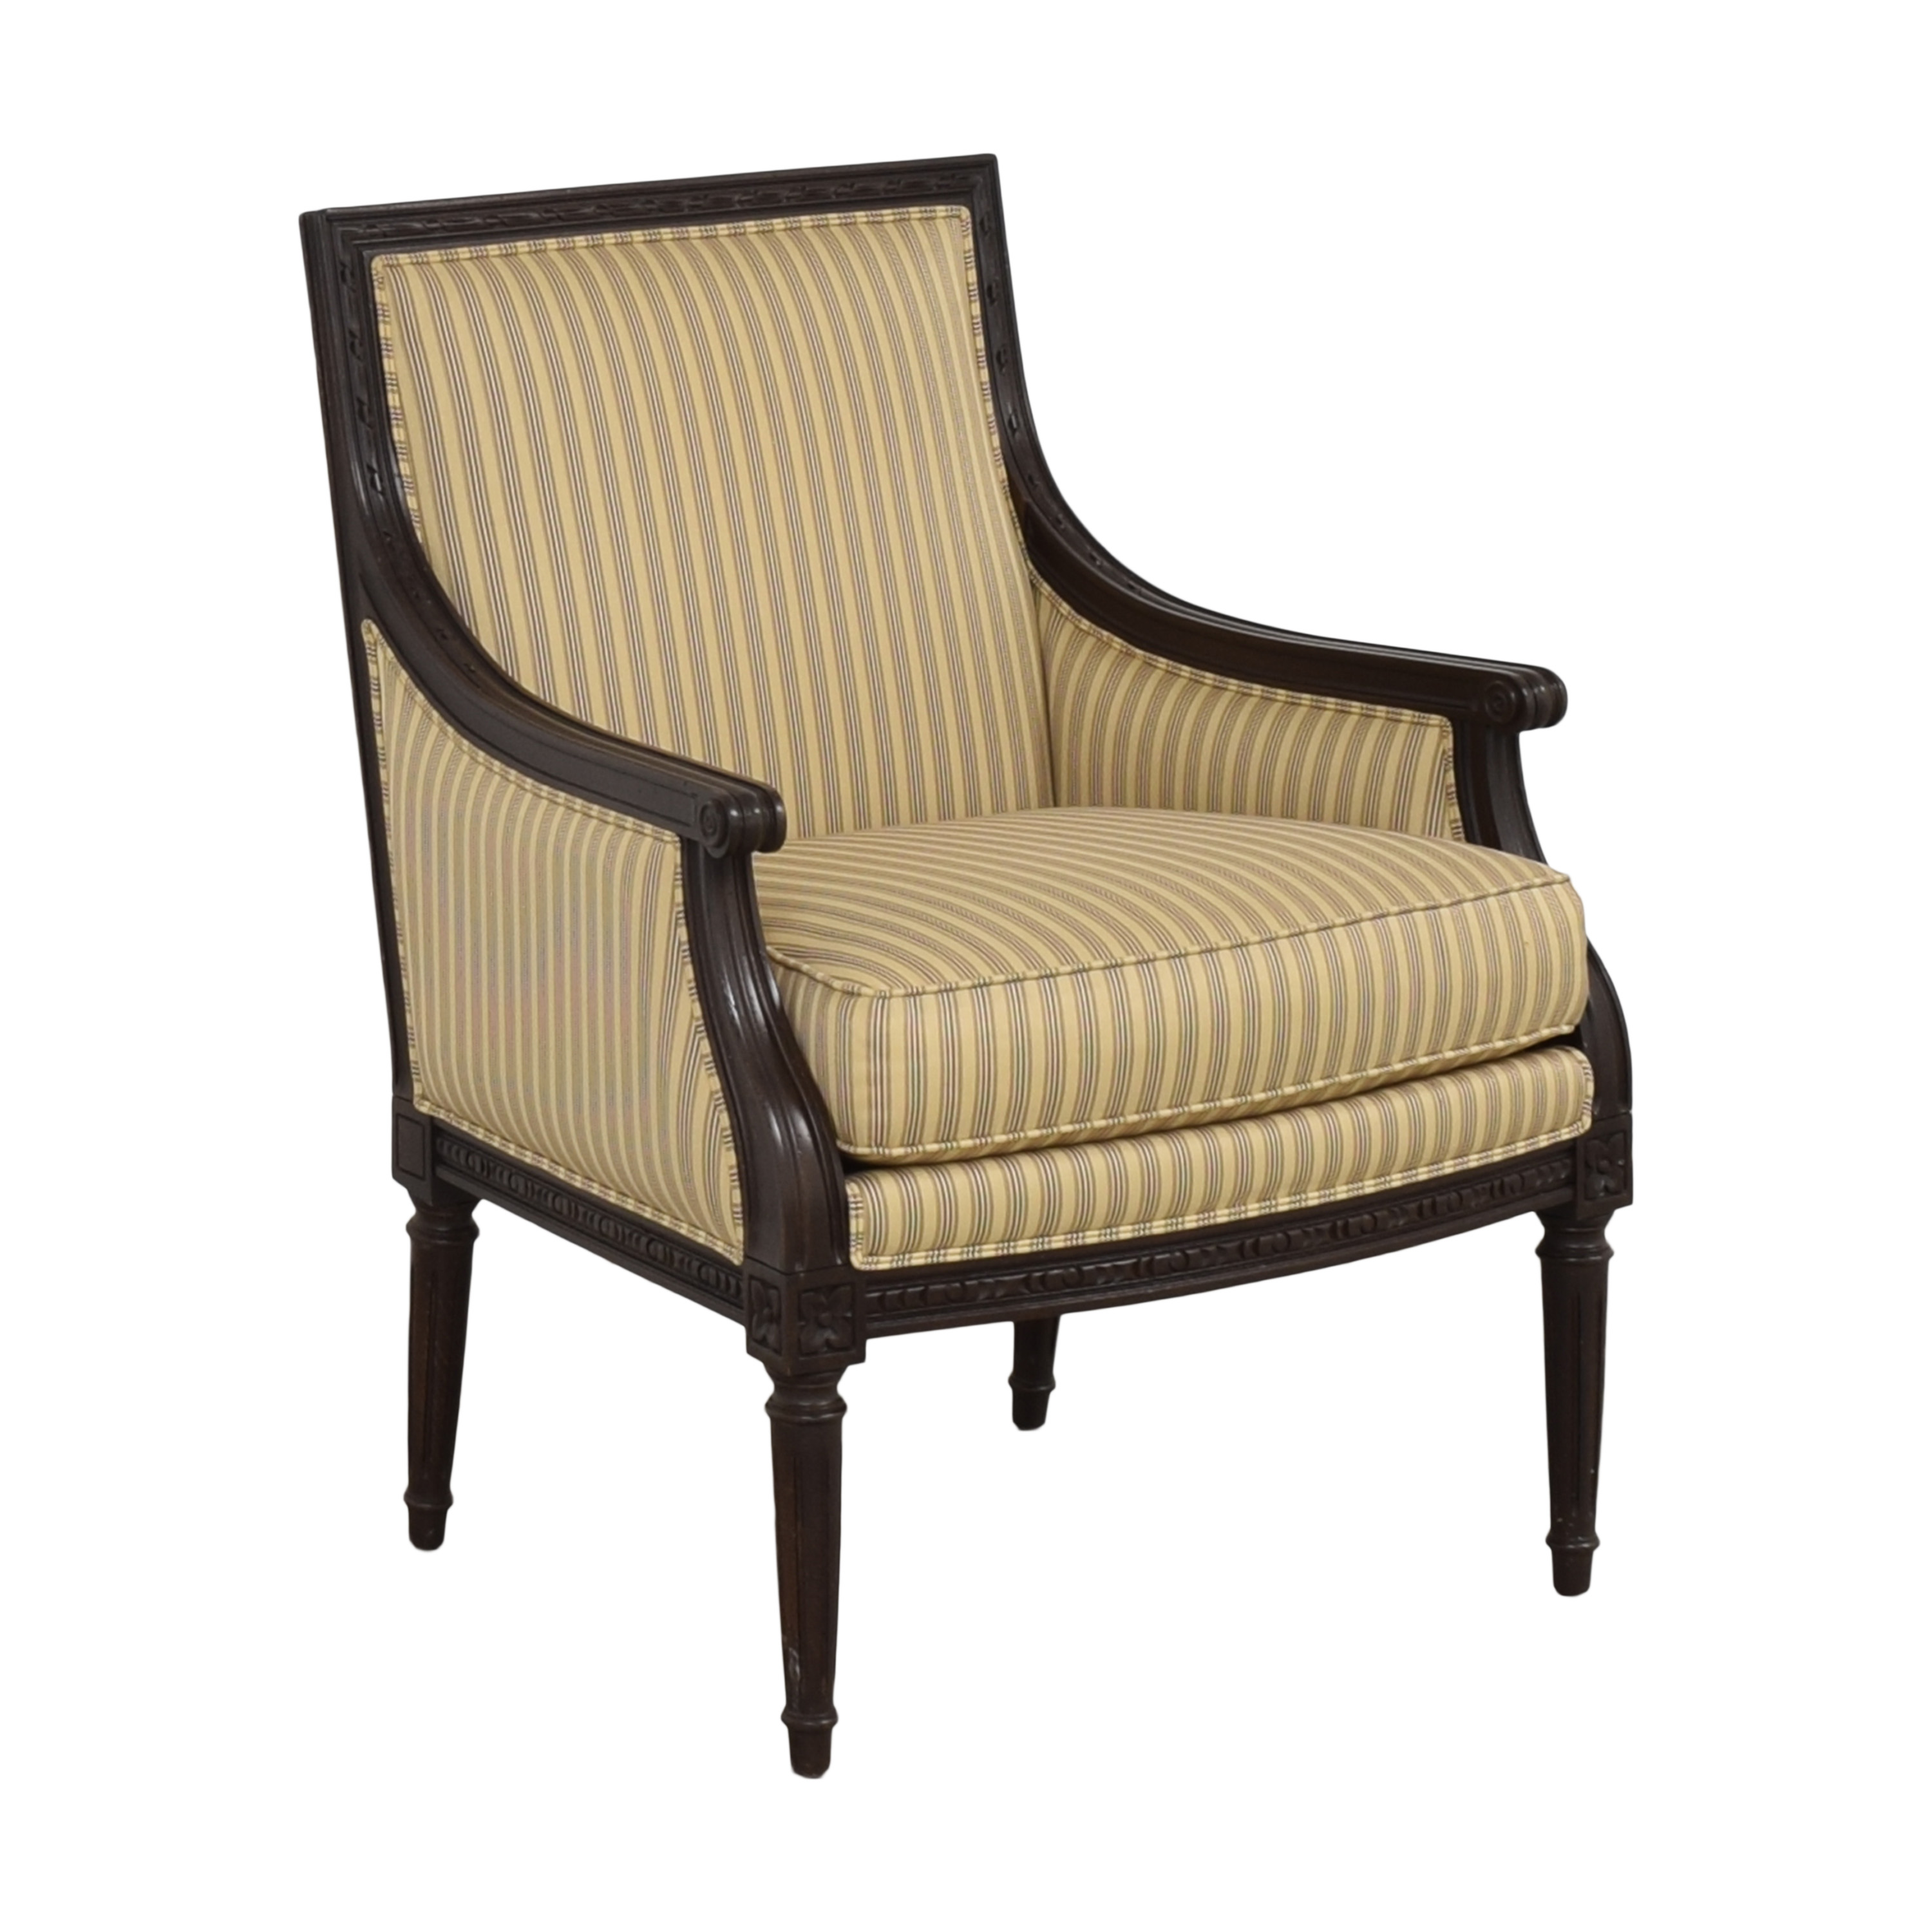 Ethan Allen Ethan Allen Giselle Chair nyc